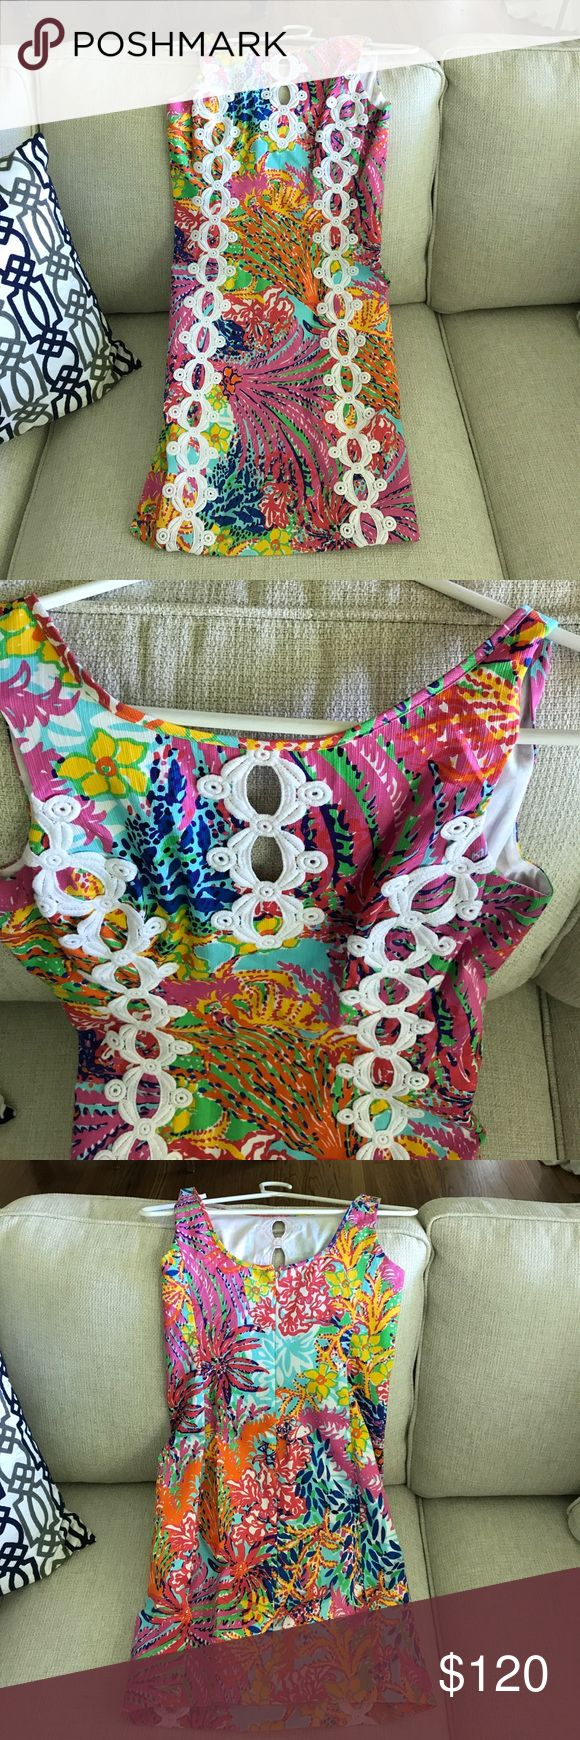 Gorgeous Lilly Pulitzer shift dress size 0 Worn once, pristine condition!!! Lilly Pulitzer shift dress size 0. Gorgeous bright color and pattern with white crochet. Zips up and scoops in back. Lilly Pulitzer Dresses